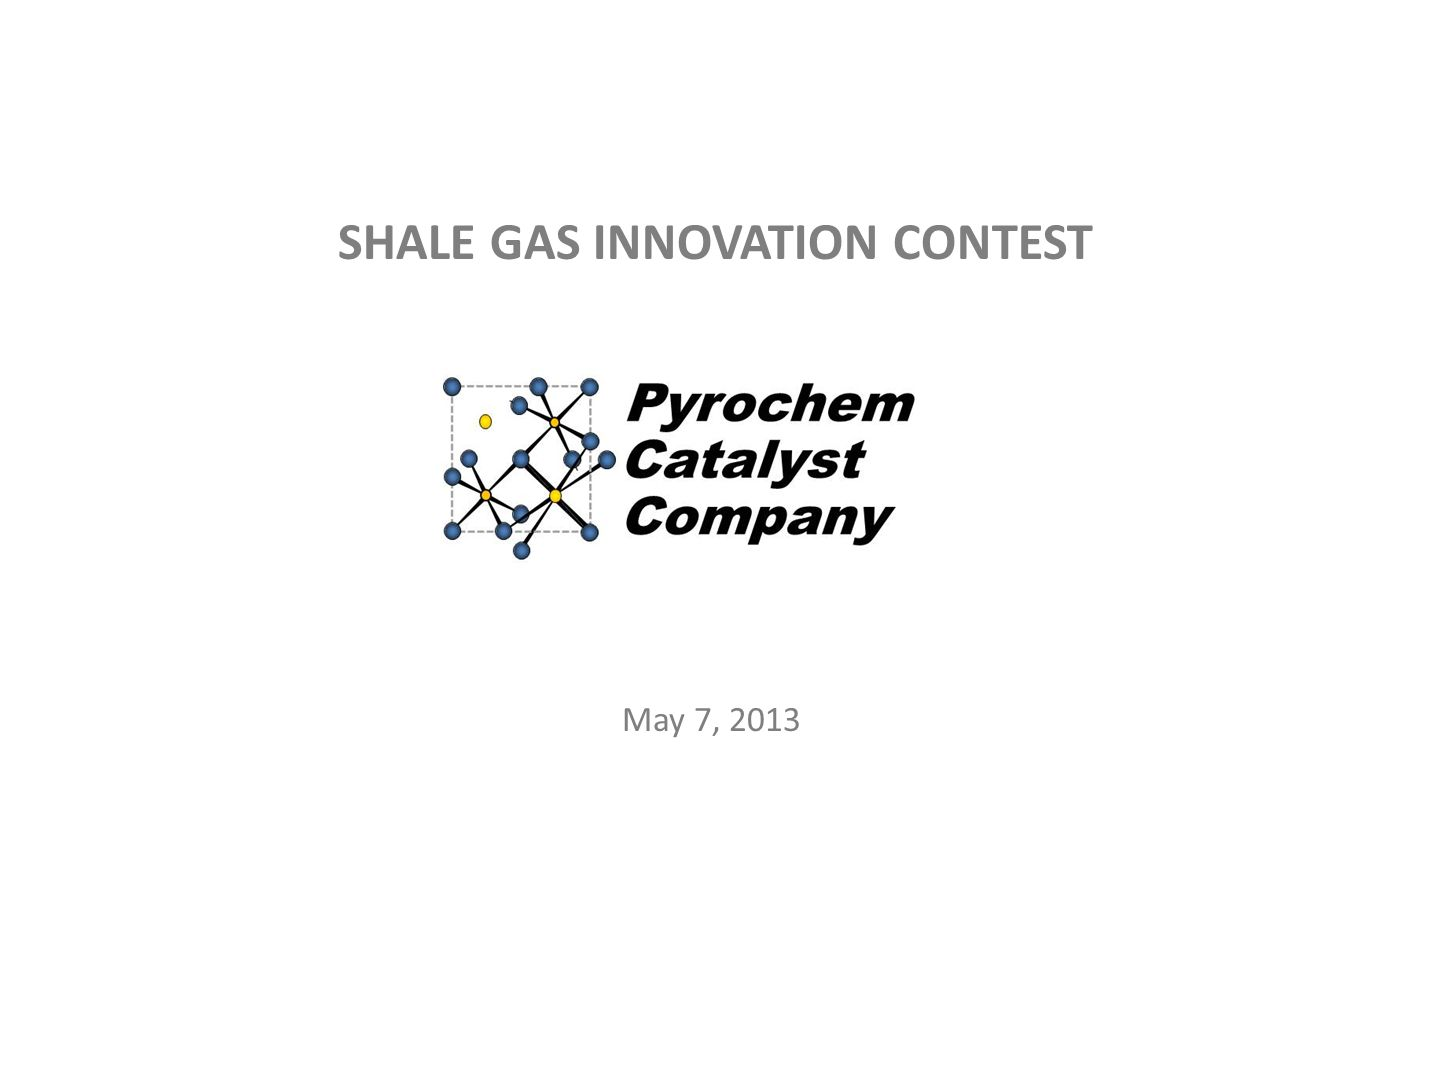 SHALE GAS INNOVATION CONTEST May 7, 2013